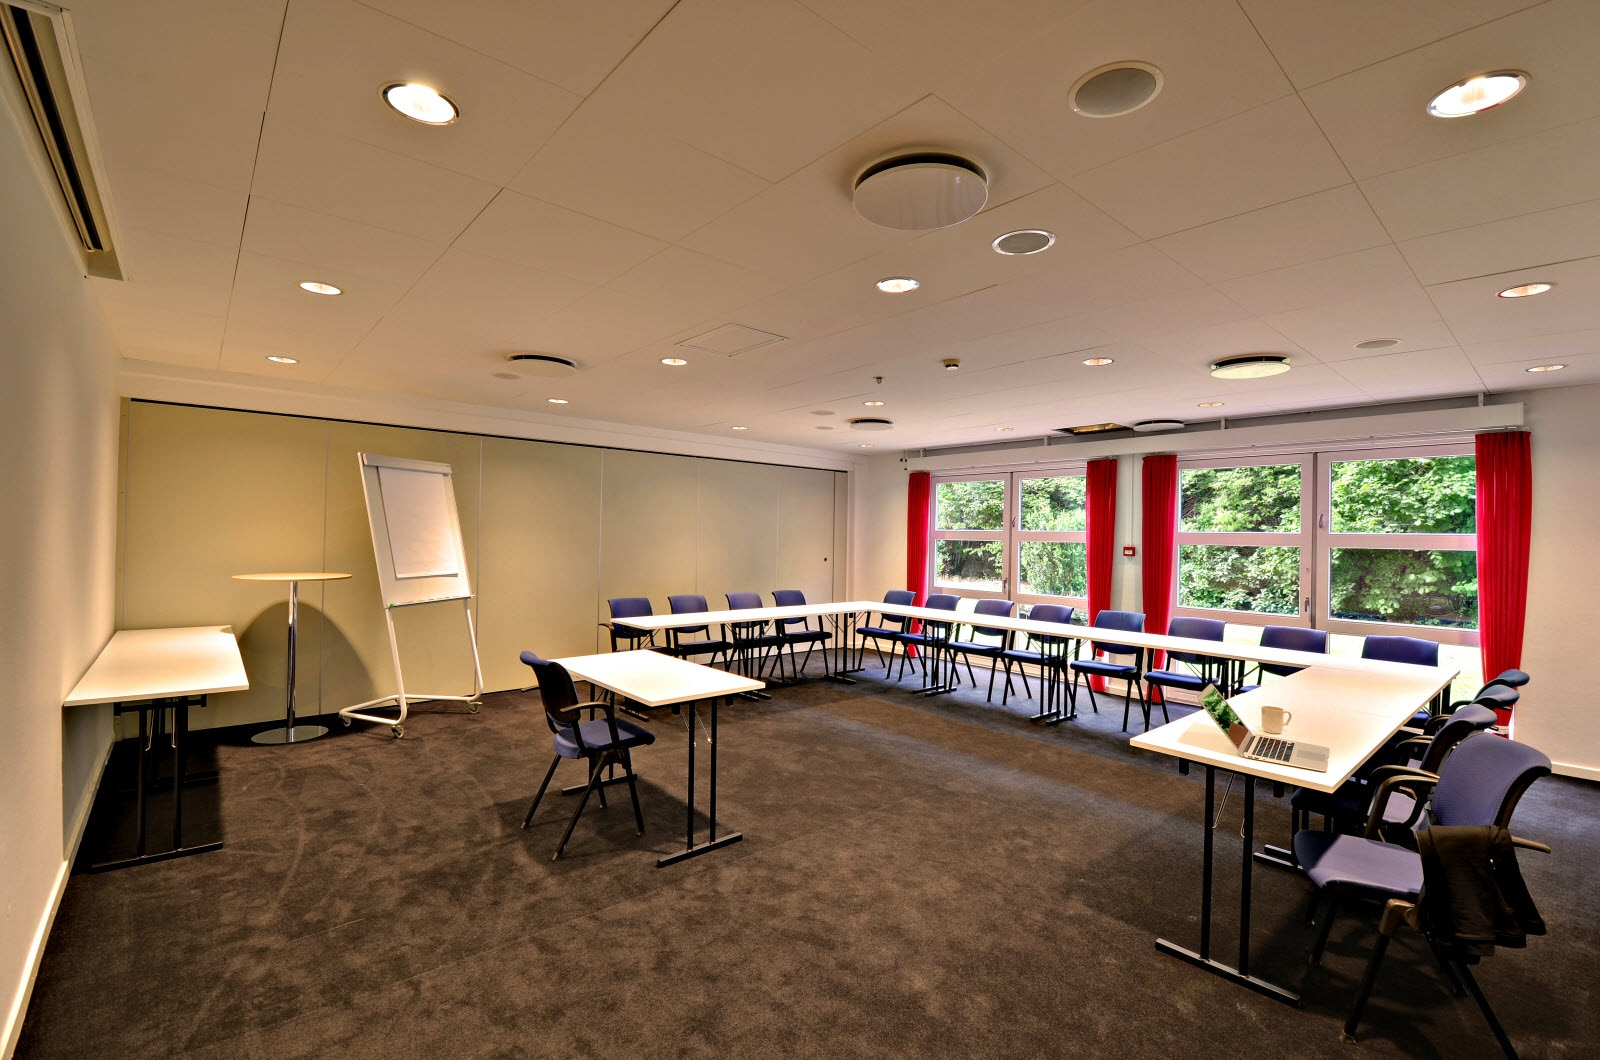 Scandic Odense, meeting and conference room